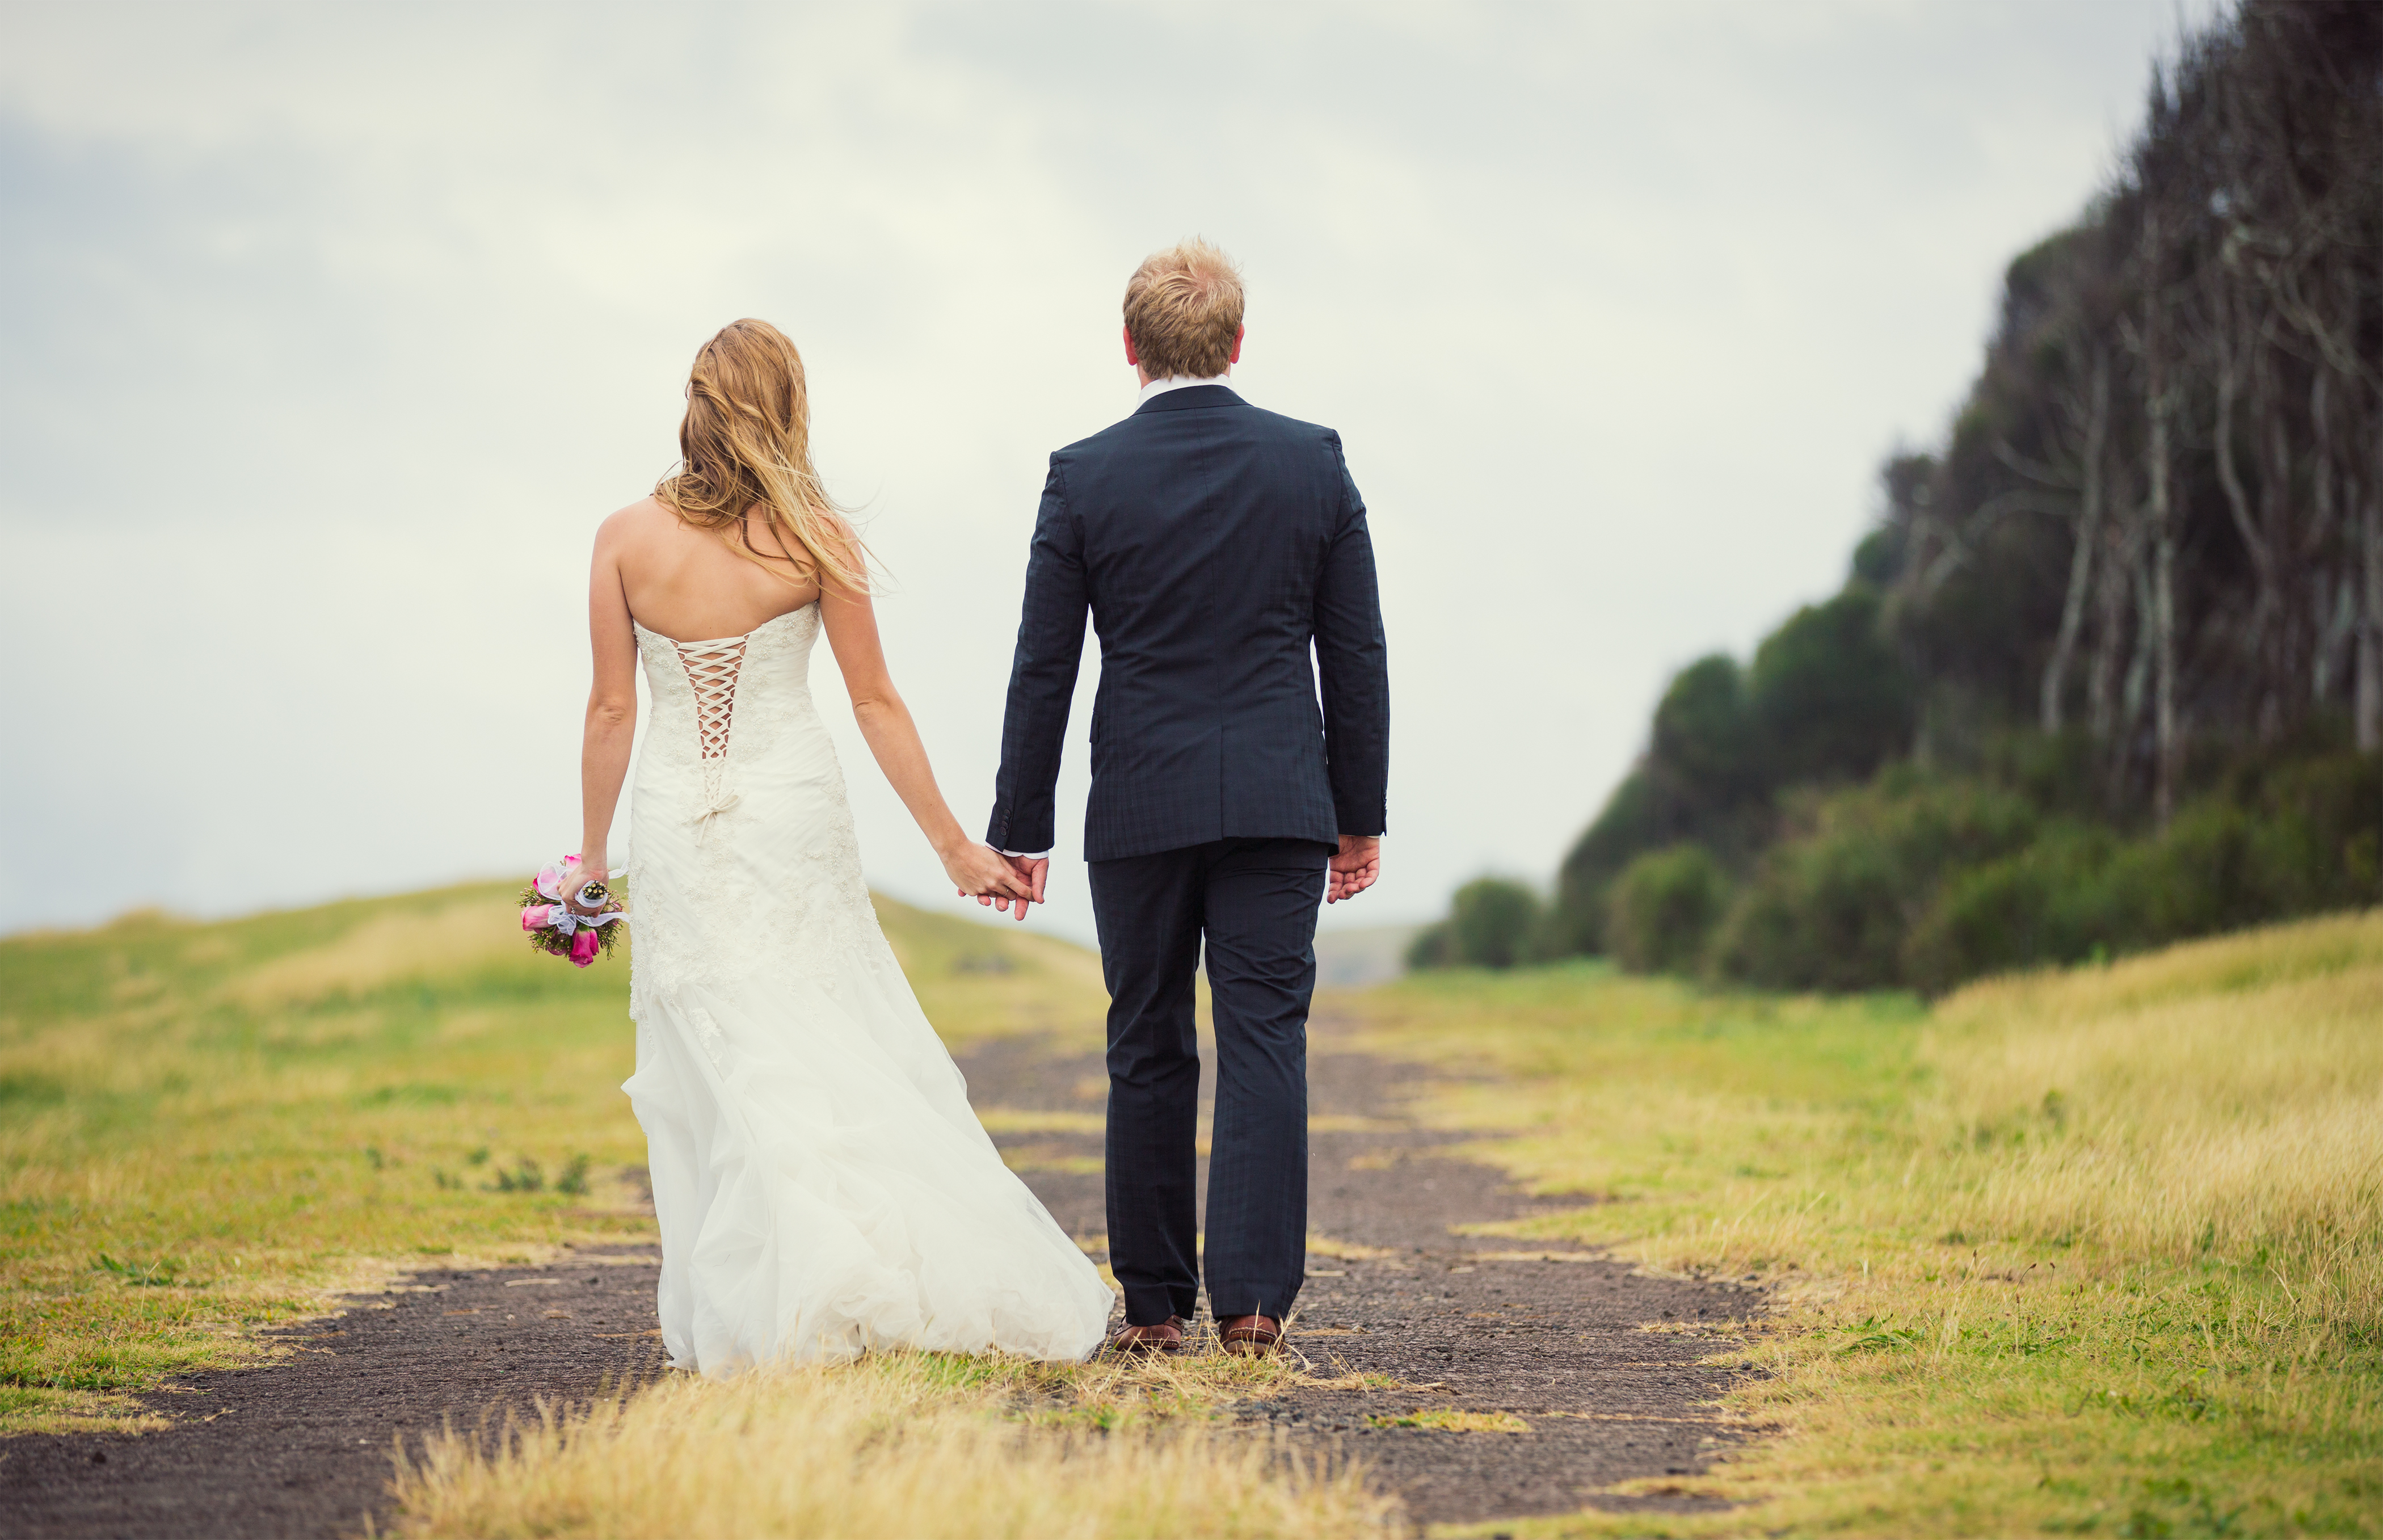 Wedding Videography from Cliff Jump Films